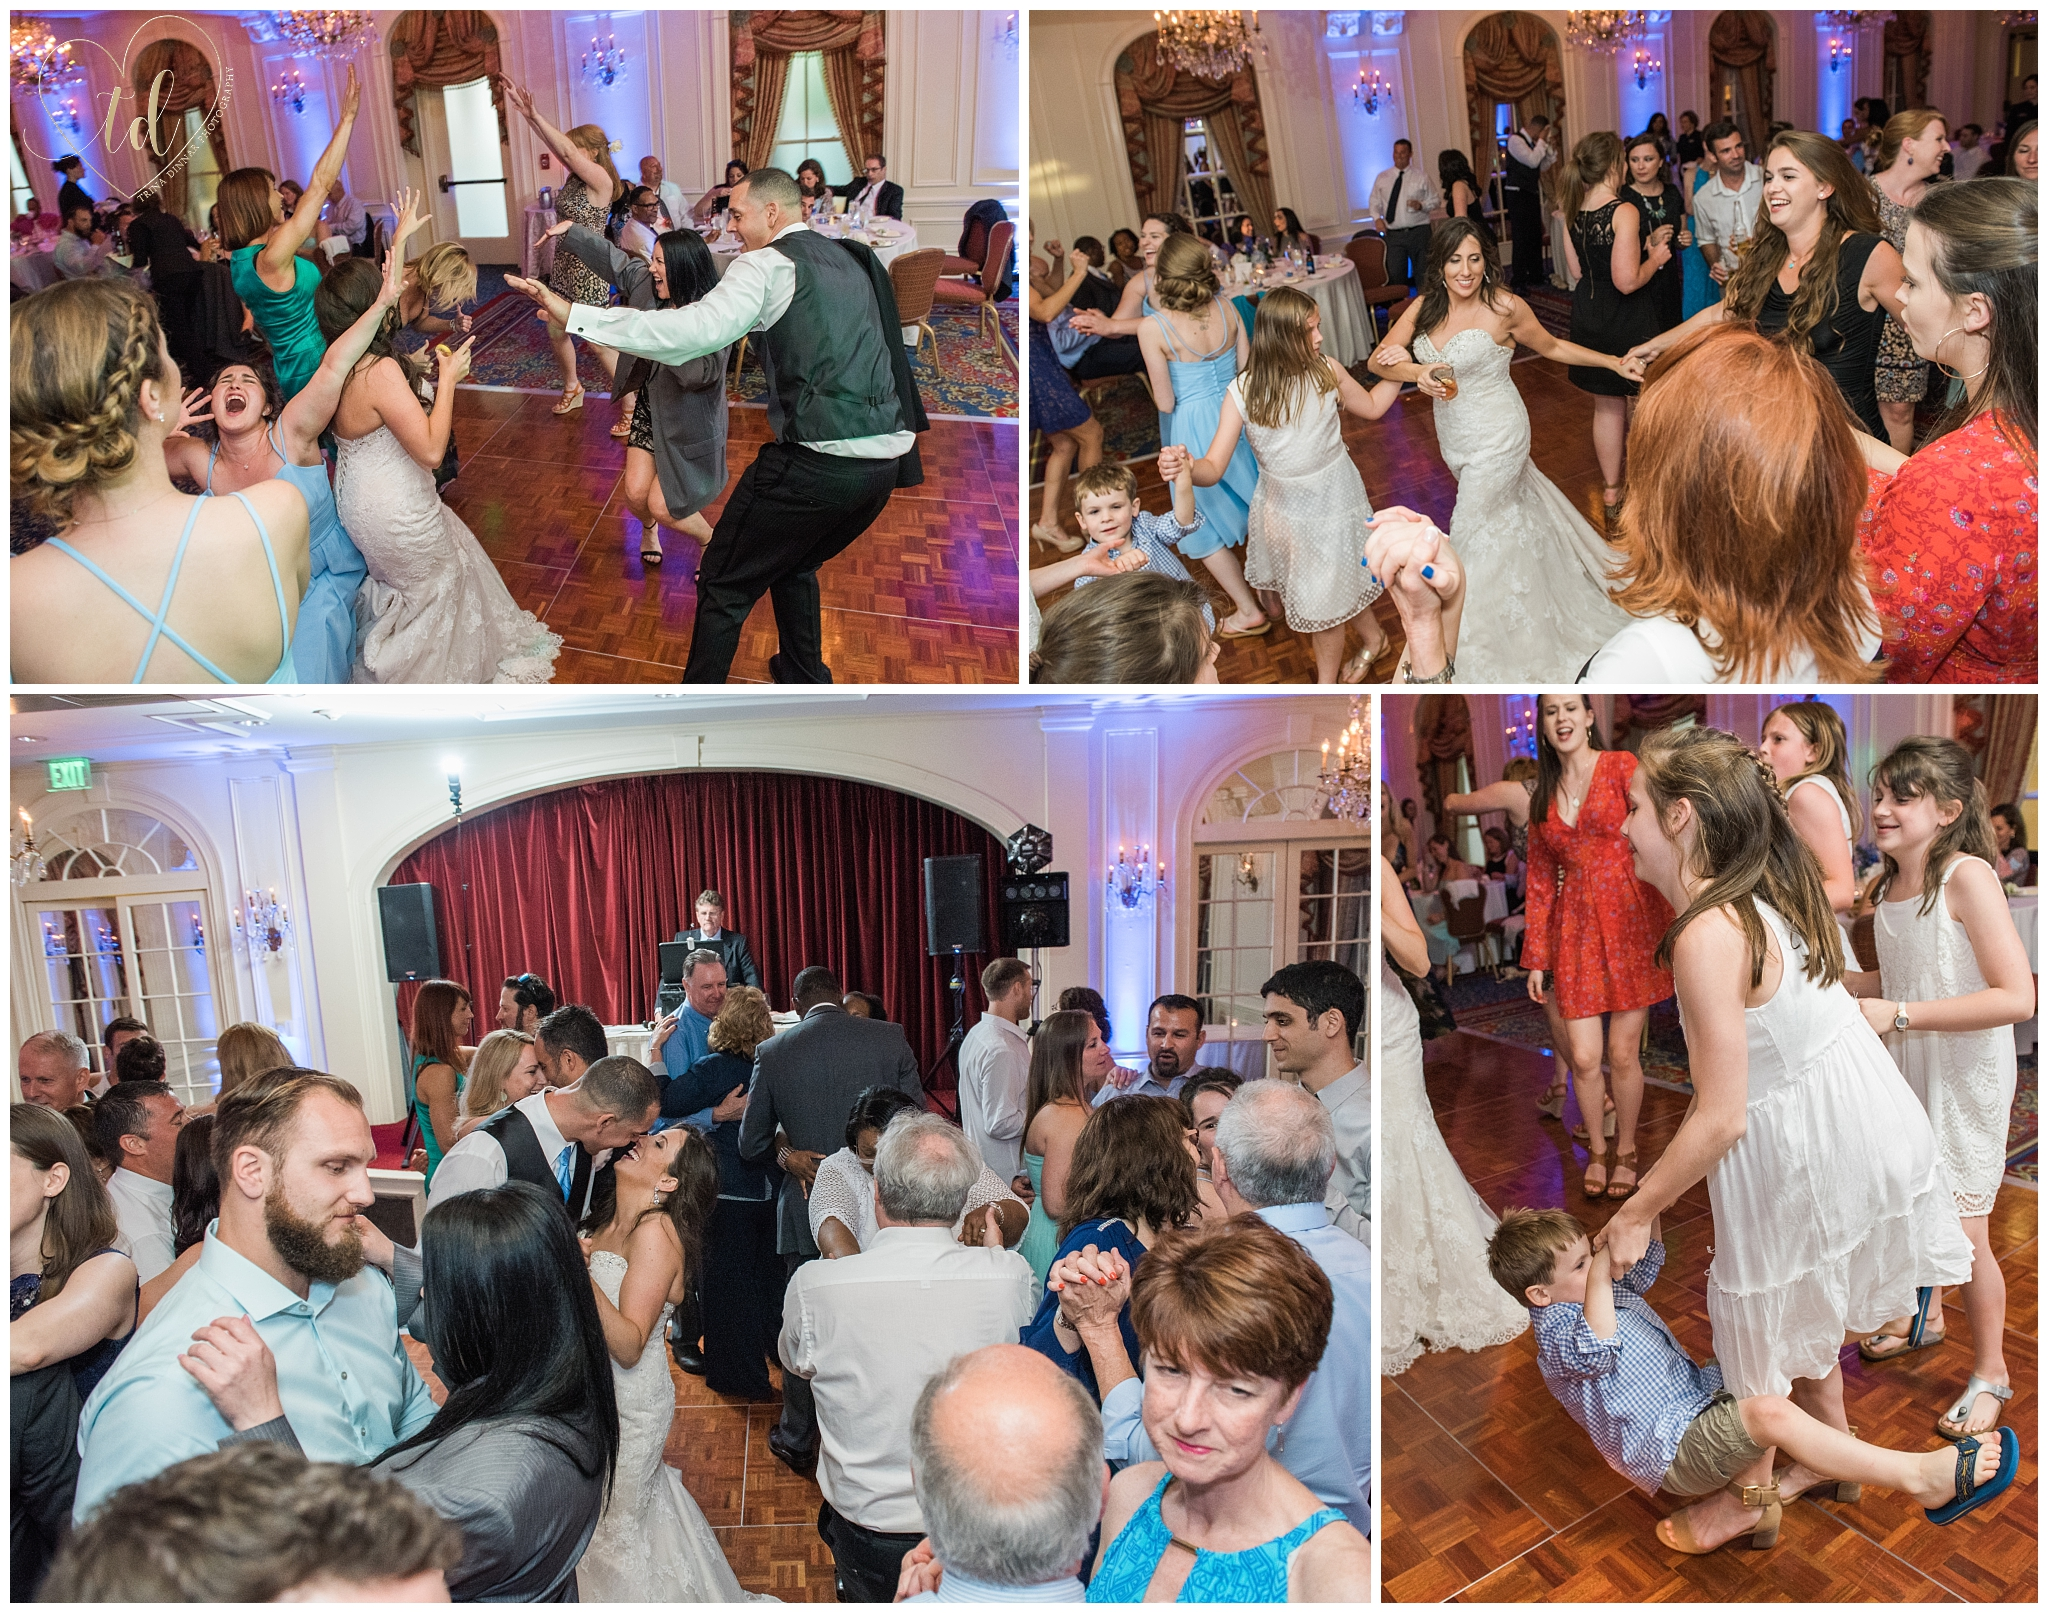 Wedding Reception at the Wentworth Ballroom in New Castle, NH